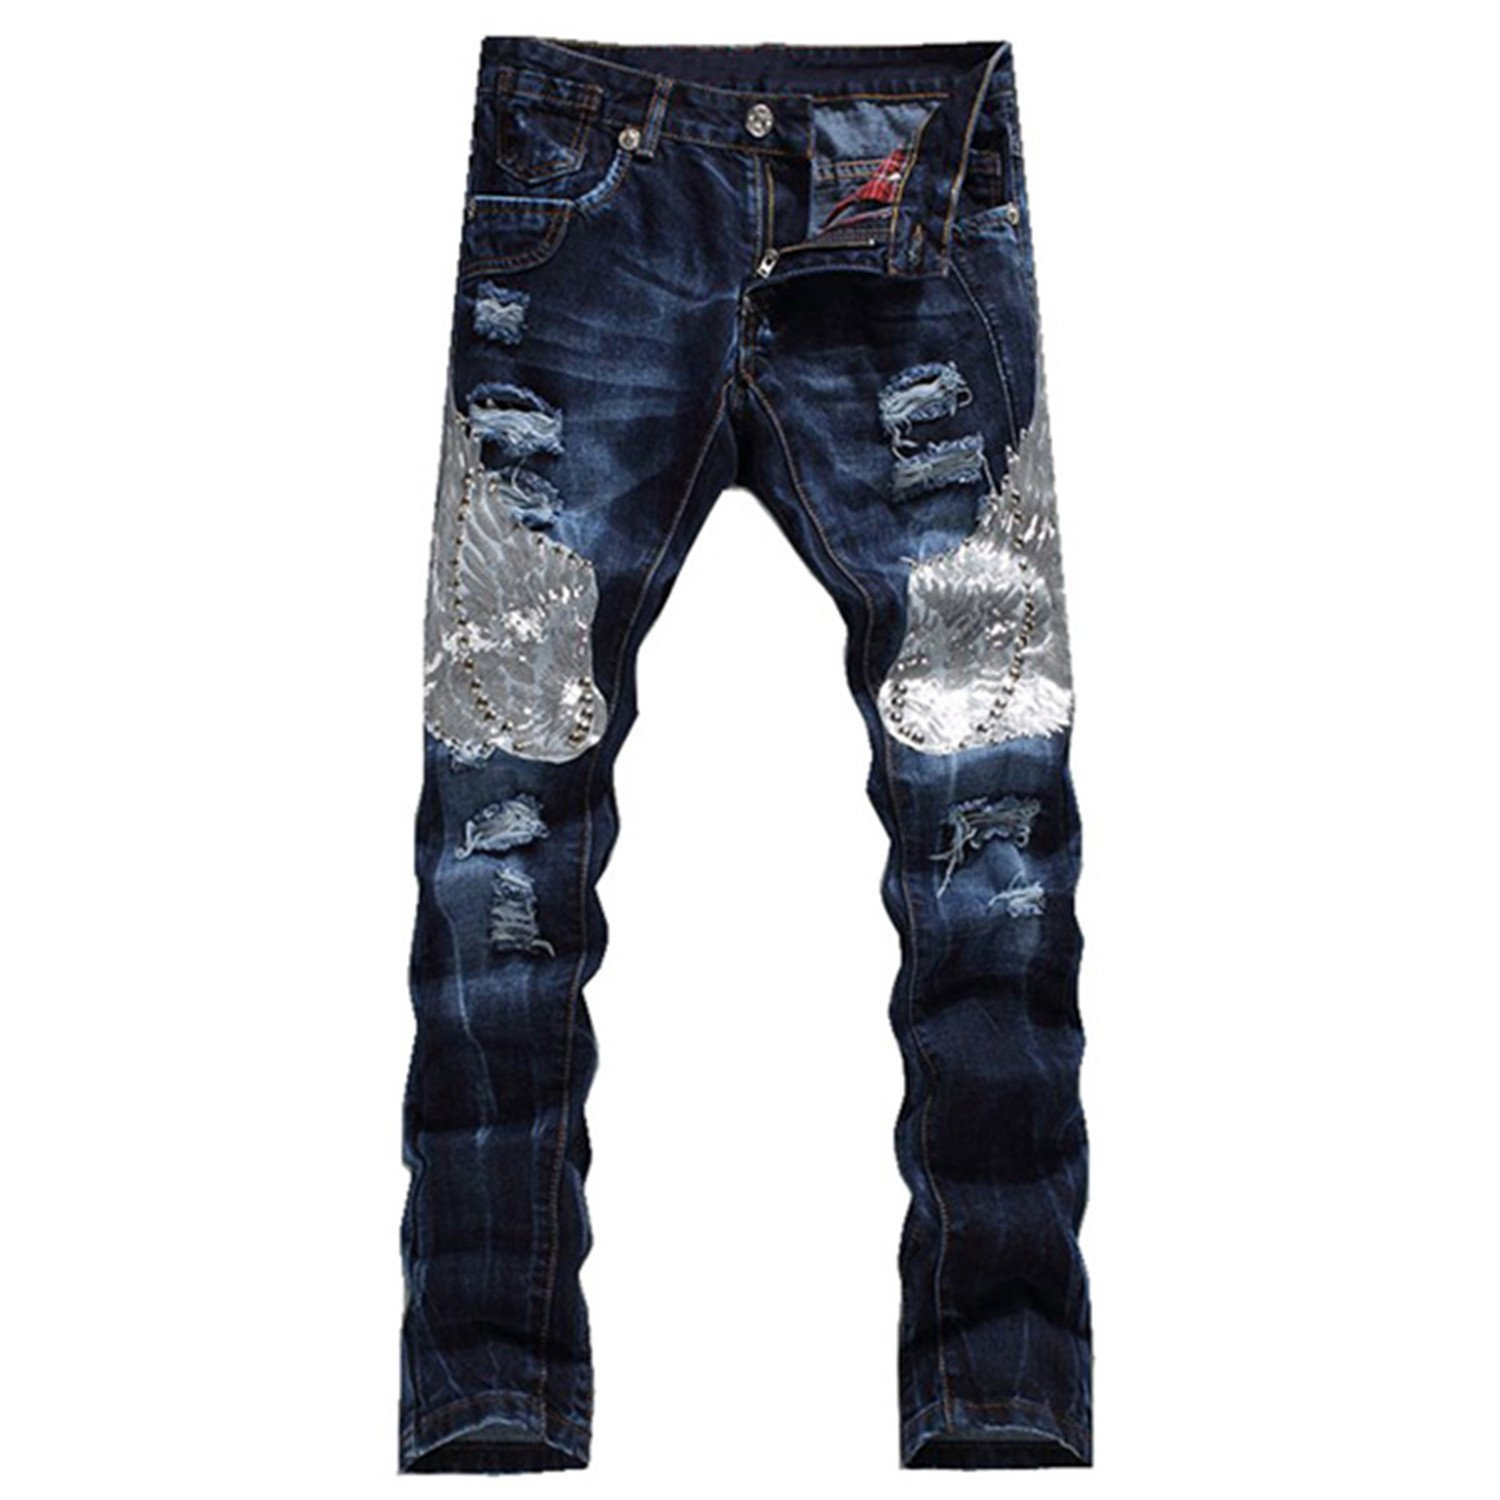 TOPING Fine Men's Fashion Eagle Wing Embroidered Denim Pants Male Casual Hole Ripped Jeans Slim Straight Trousers Blue36